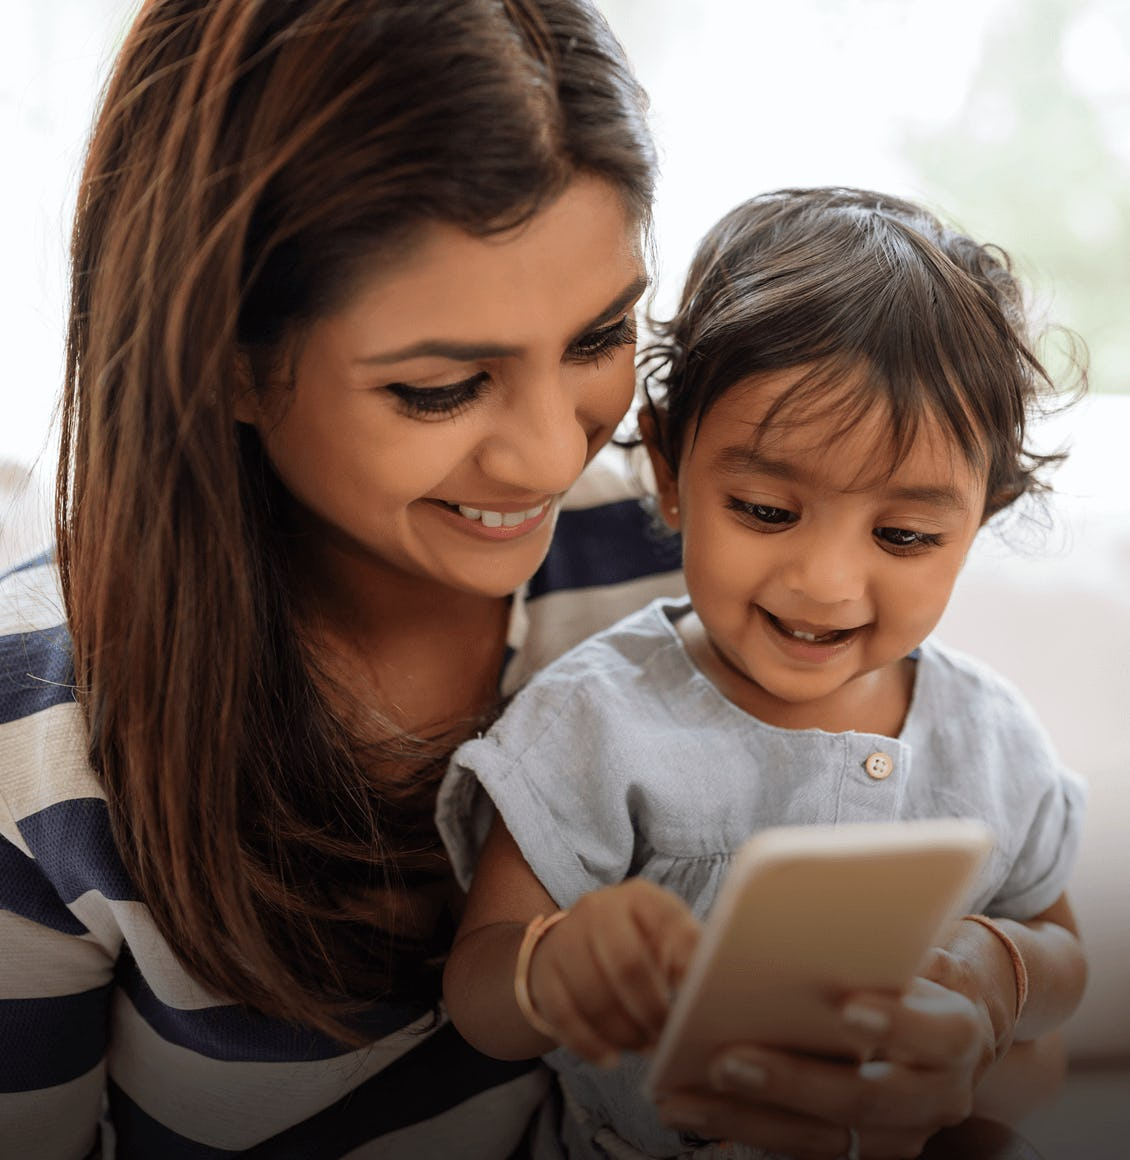 a mother with her son looking at a phone